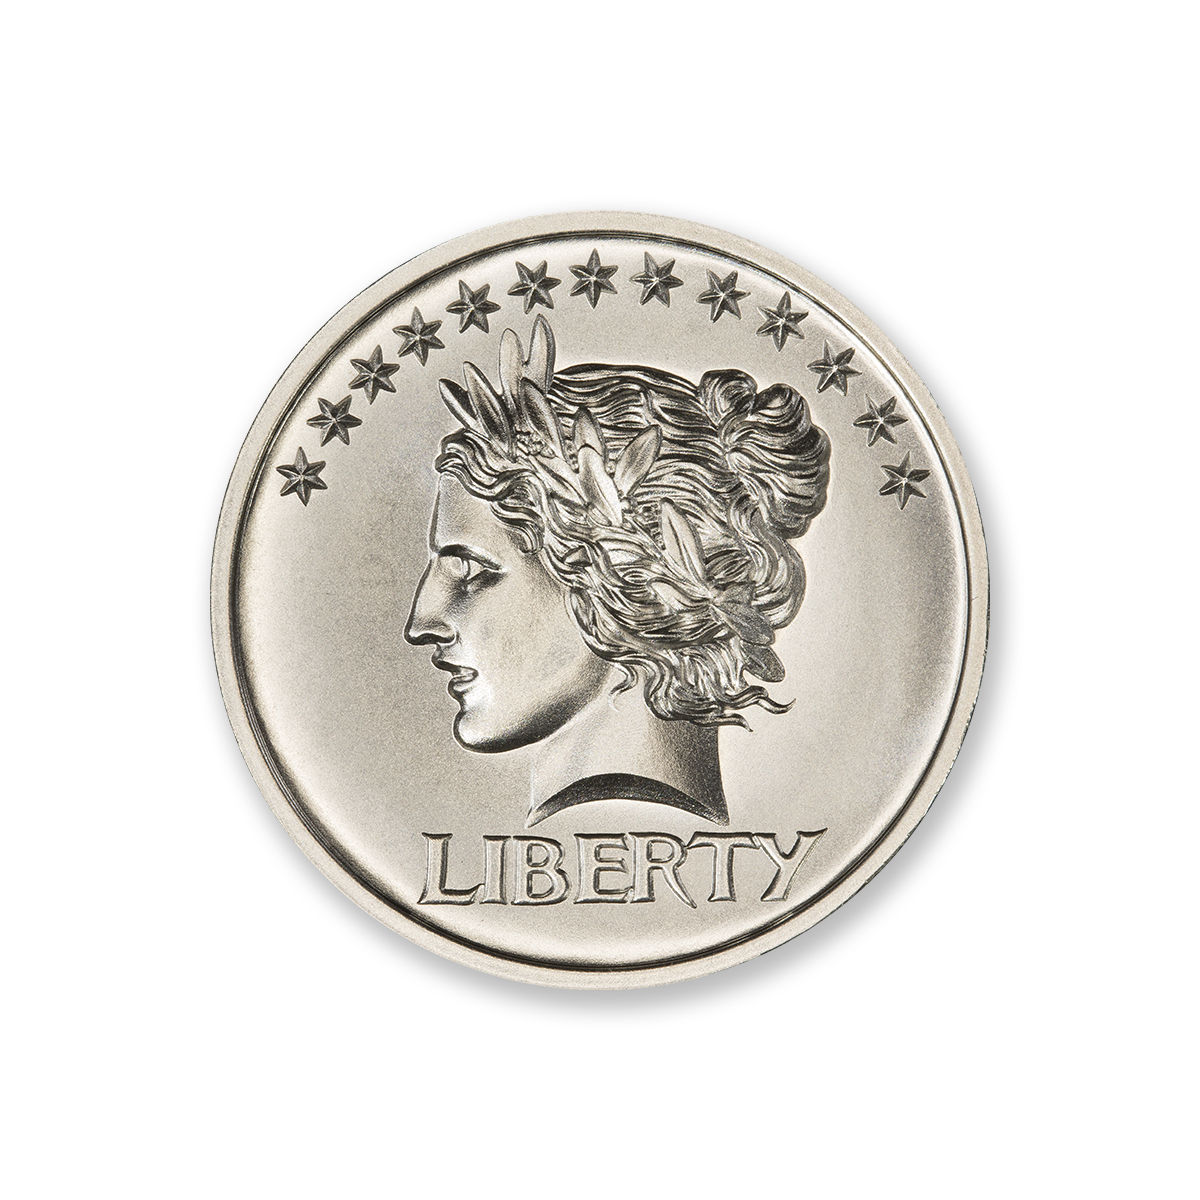 SAINT-GAUDENS ONE CENT COIN TRIBUTE – 2 TROY OUNCE – 39MM